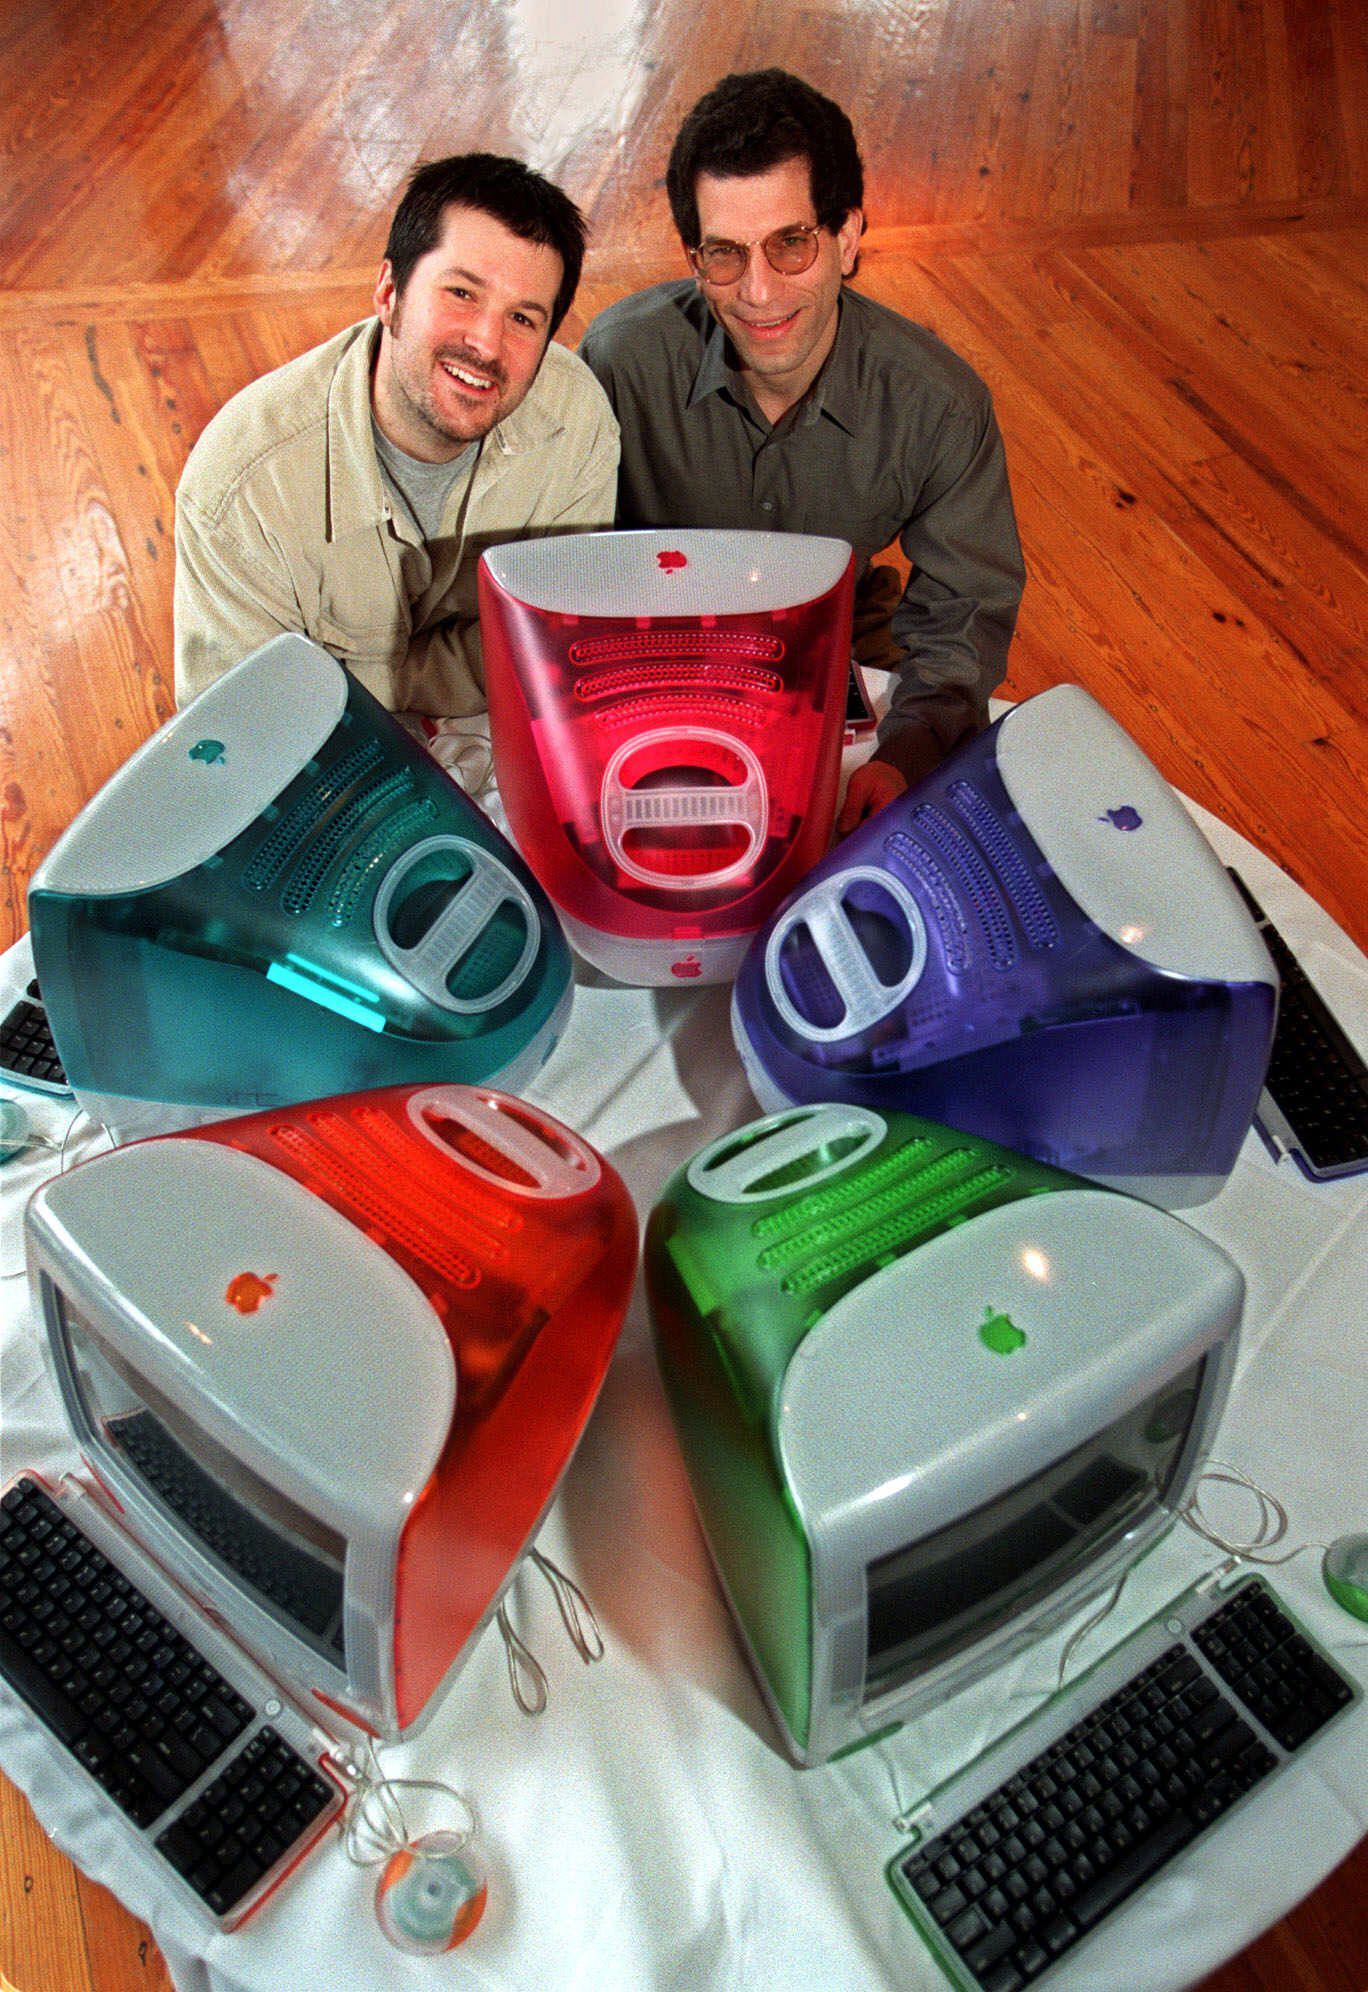 FILE - In this file photo taken March 19, 1999, Jonathan Ive, left, Apple's vice president of design, and Jon Rubinstein, Apple's senior vice president of engineering, pose behind five iMac personal computers, at Apple headquarters in Cupertino, Calif. Apple CEO Steve Jobs may be the company's most recognizable personality, but much of its cachet comes from its clean, friendly-looking designs _ the product of its head designer, Jonathan Ive. (AP Photo/Susan Ragan, File)